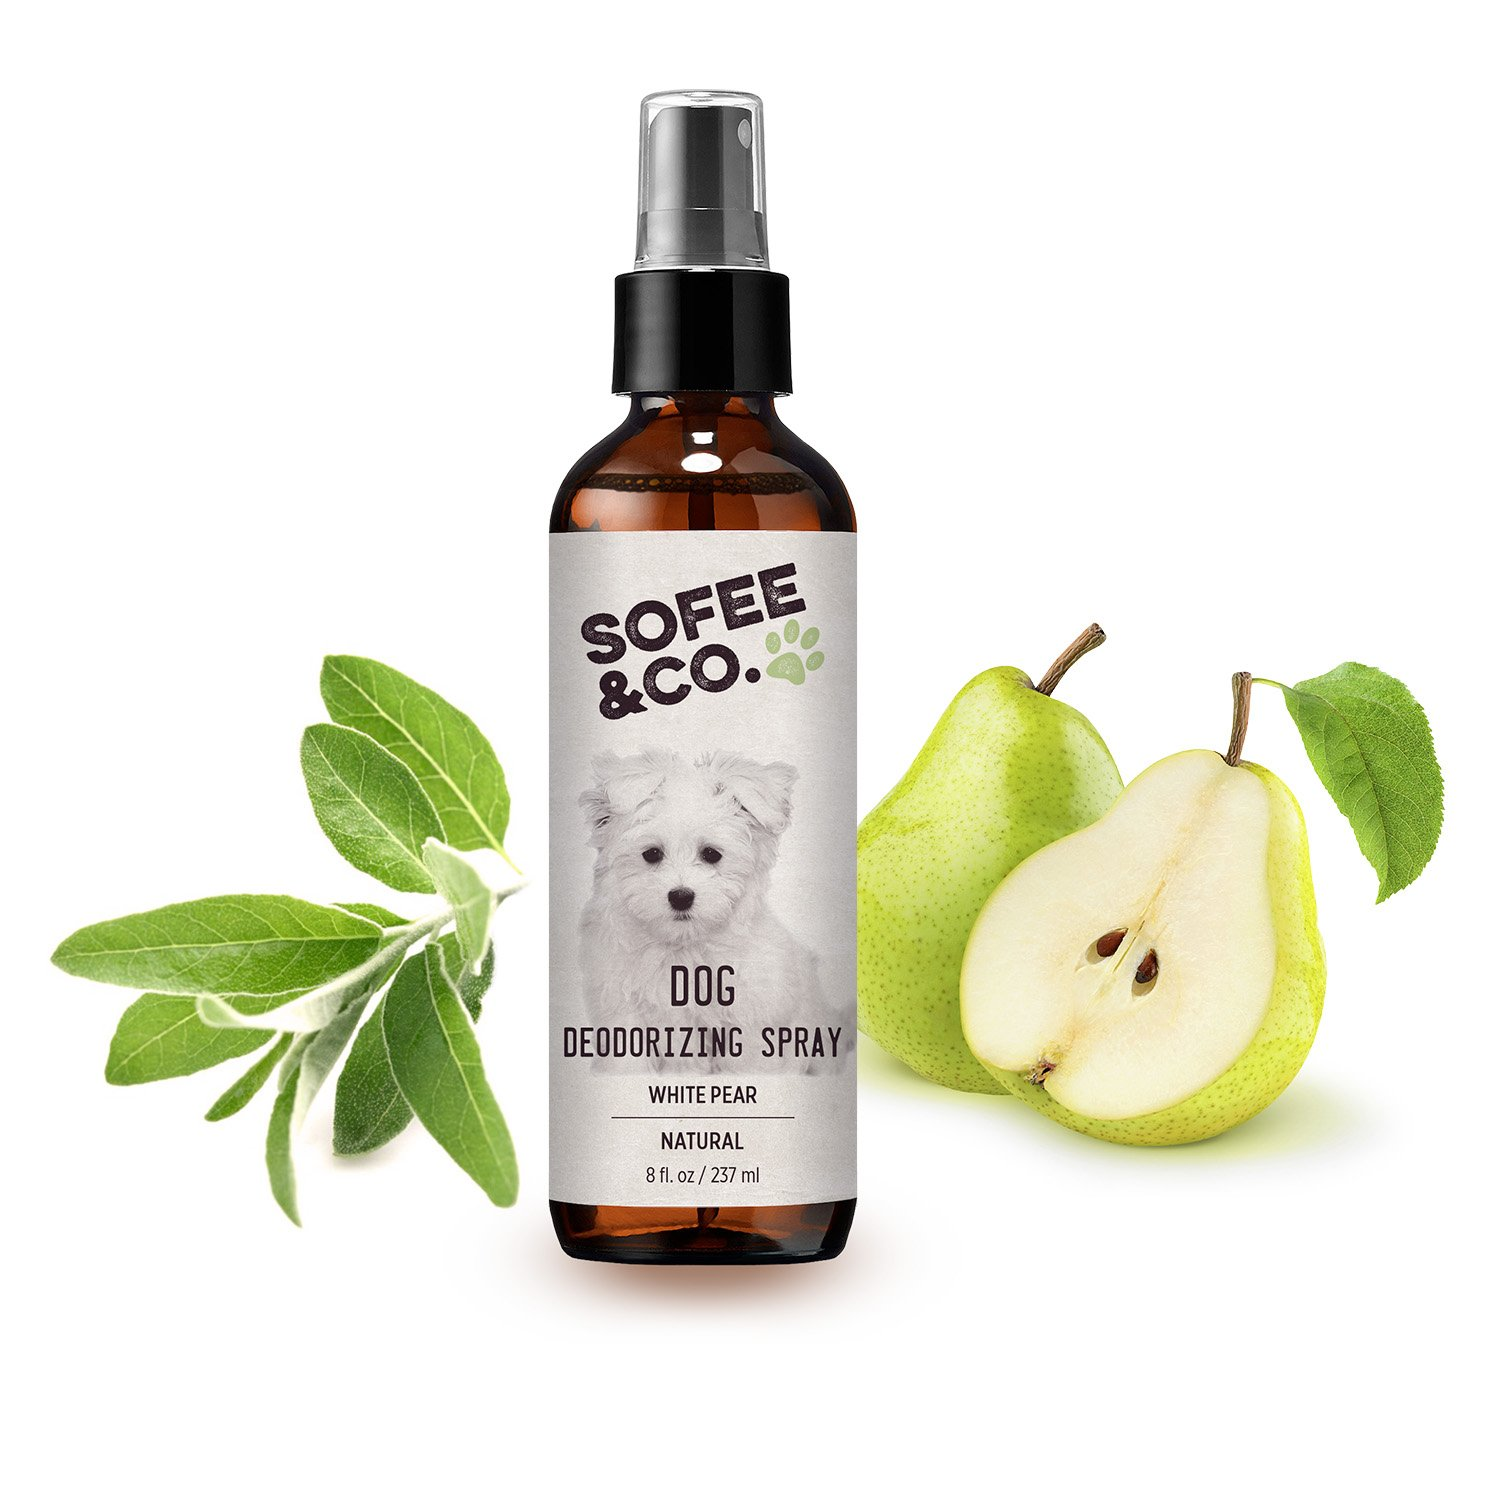 Sofee & Co. Natural Dog/Puppy Deodorizing Spray, Freshener - White Pear - Neutralizes Eliminates Odors - Pet Deodorizer, Perfume, Cologne. Use Directly On Pets, Furniture, Bedding, Carpets, Rugs.